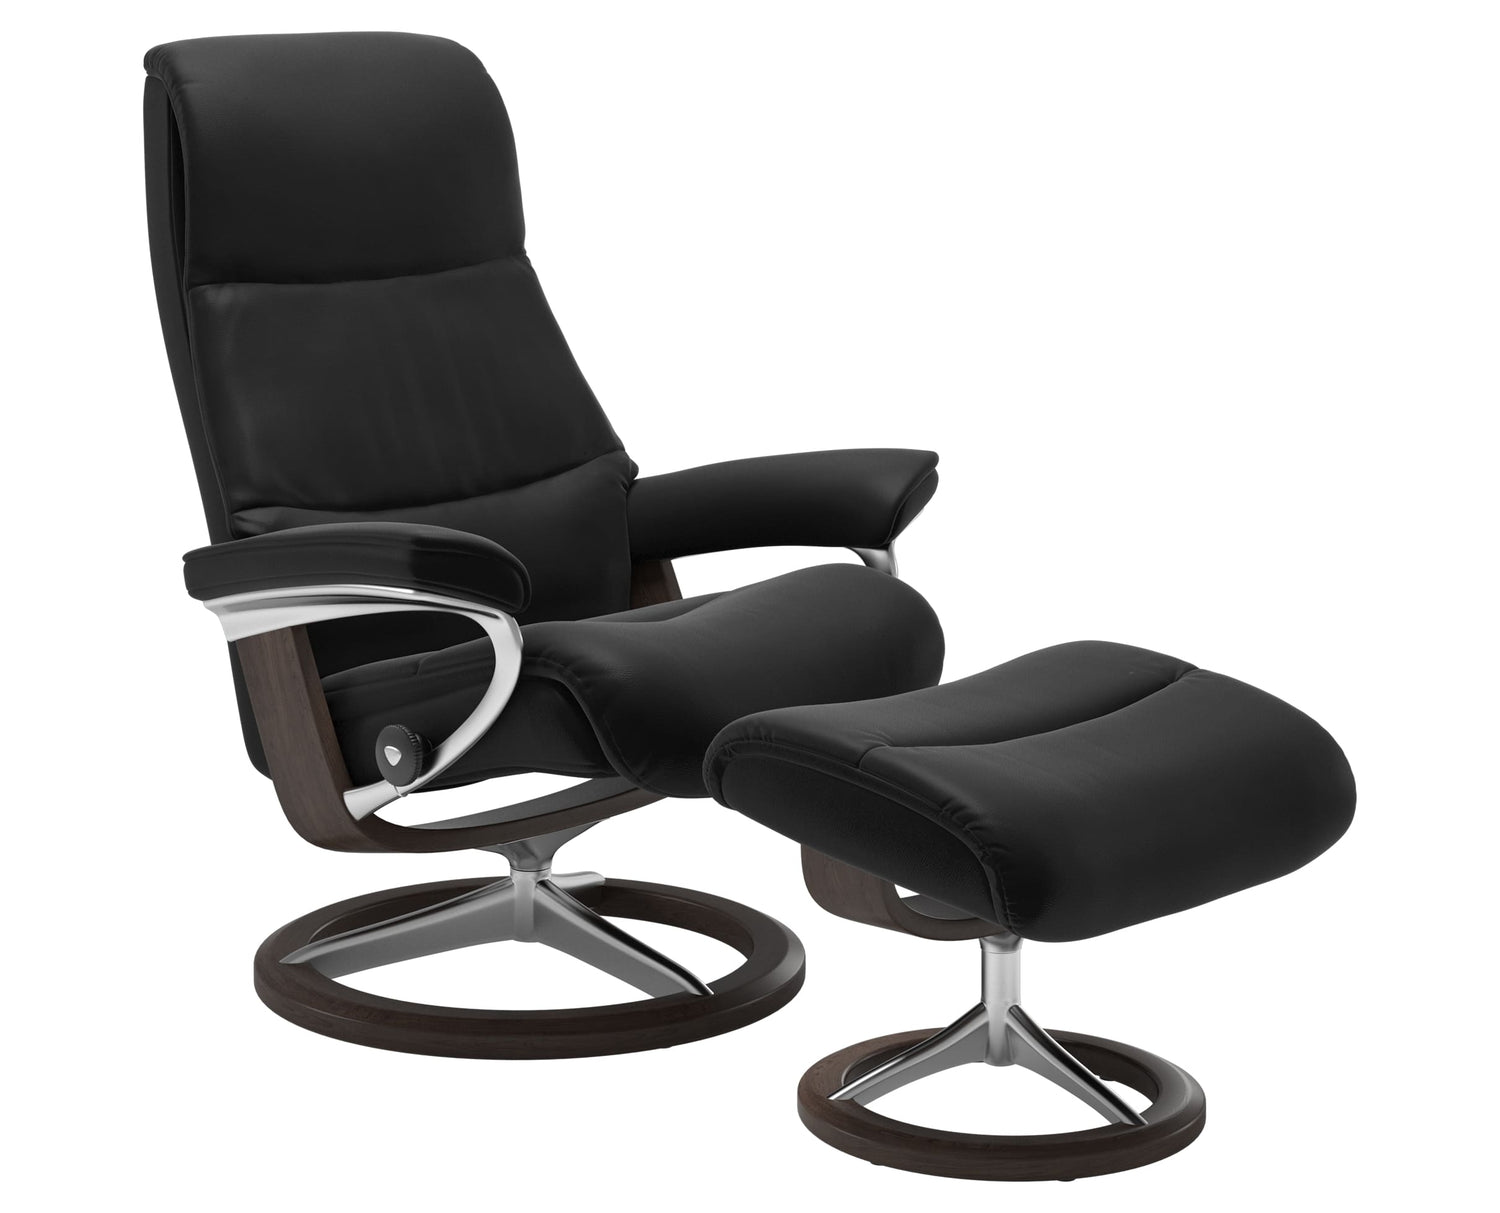 Paloma Leather Special Black L & Wenge Base | Stressless View Signature Recliner | Valley Ridge Furniture